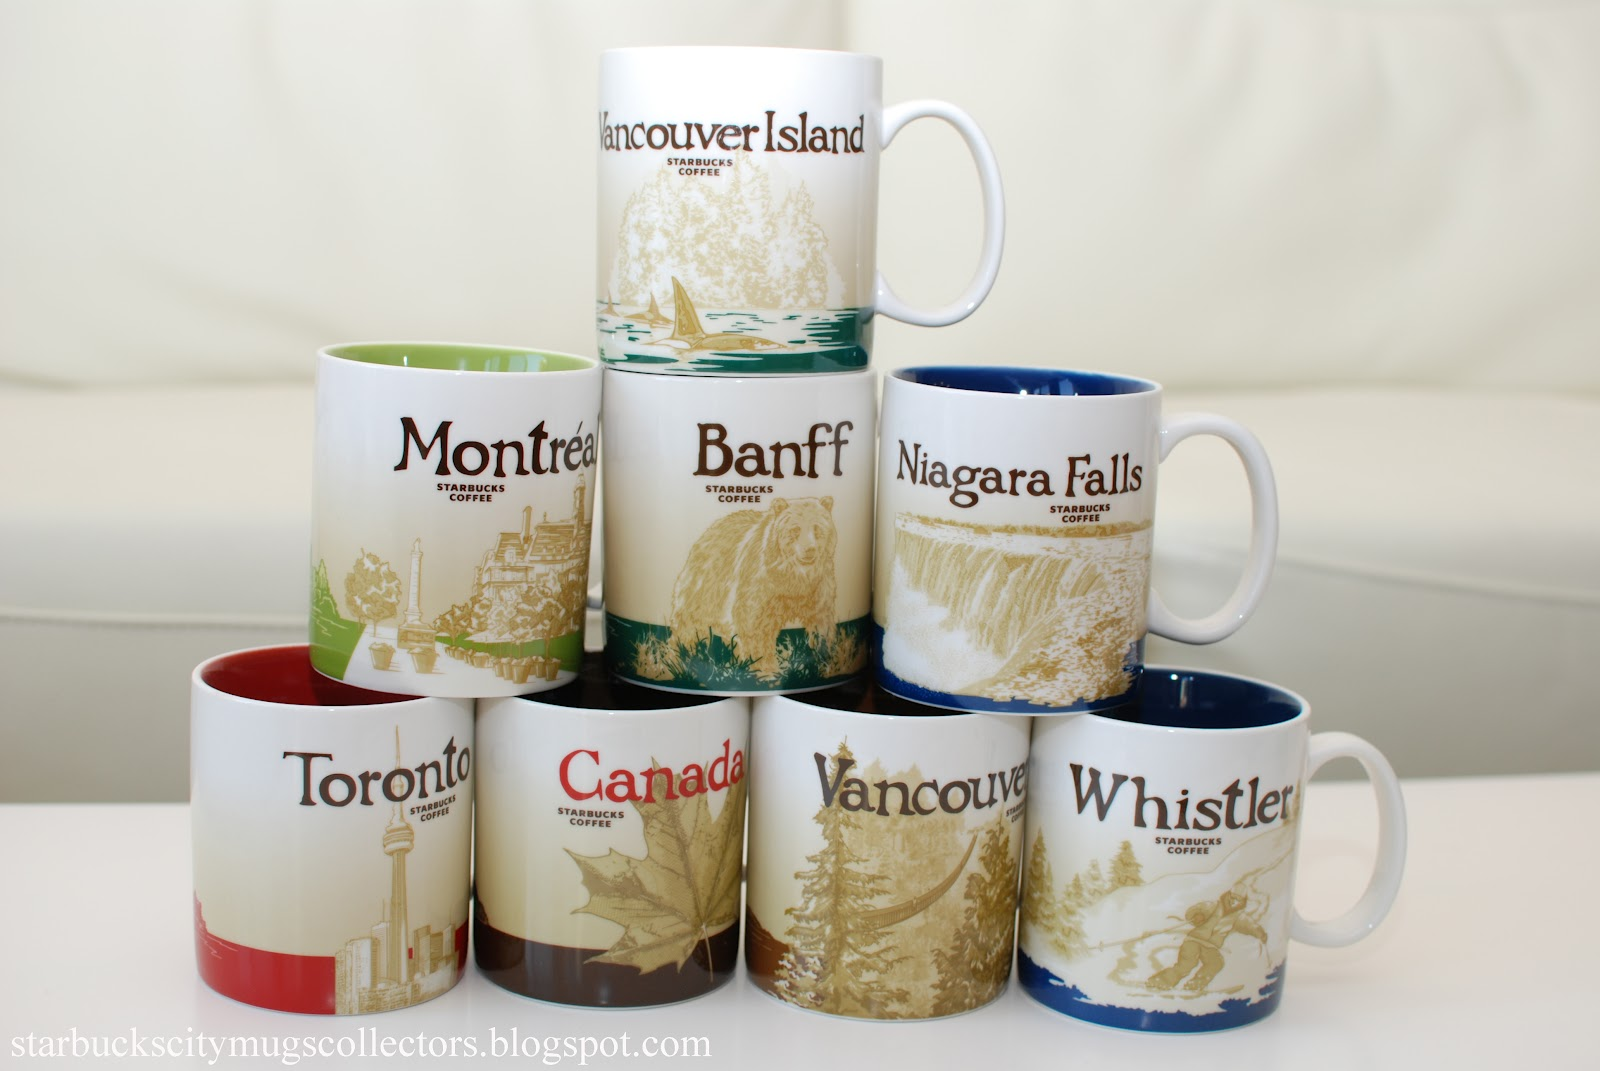 Starbucks City Mugs Canada Global Icons